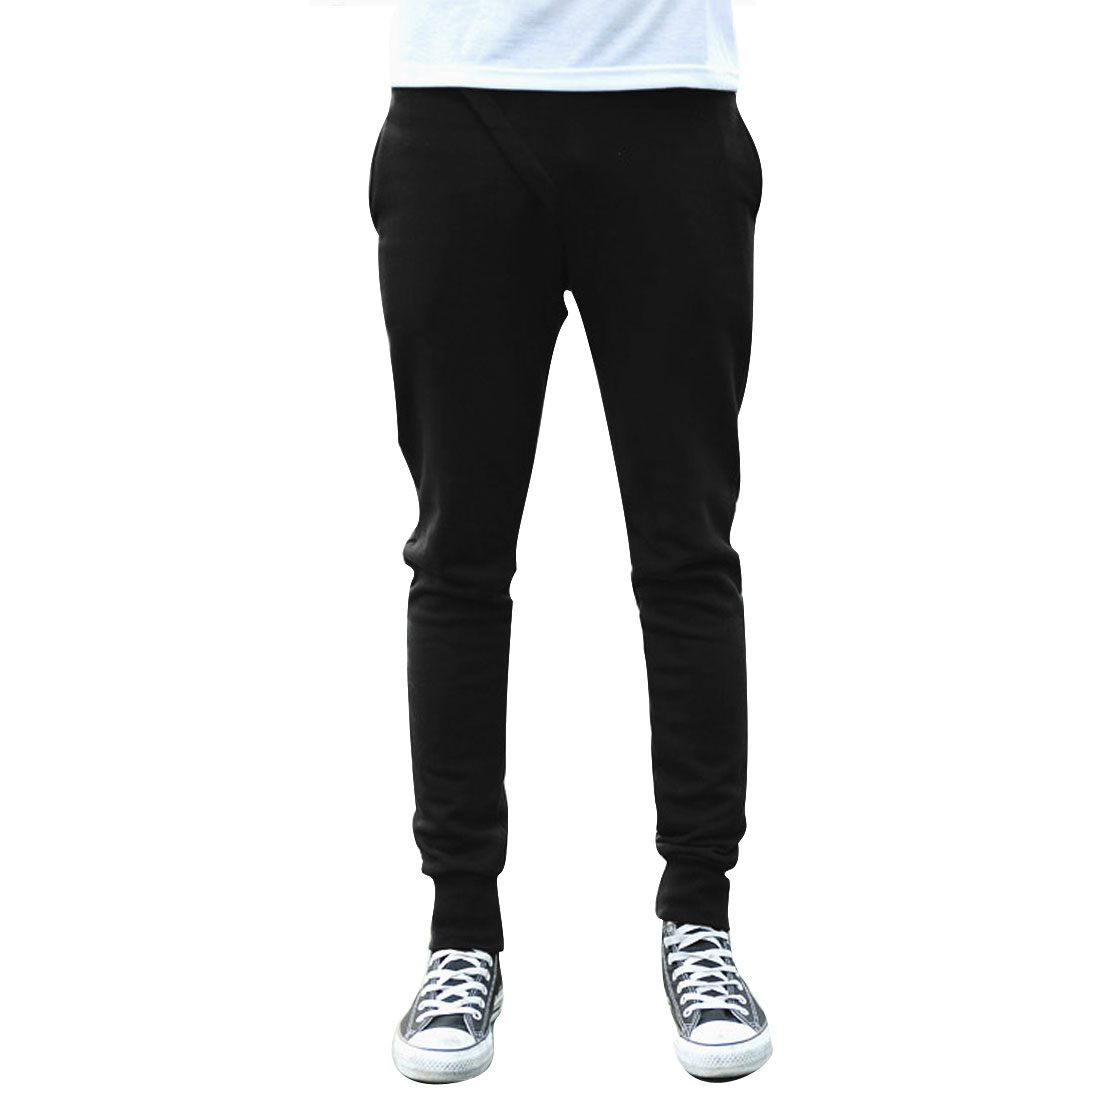 Men Elastic Waist Hip Pockets Casual Stretchy Pants Black W27